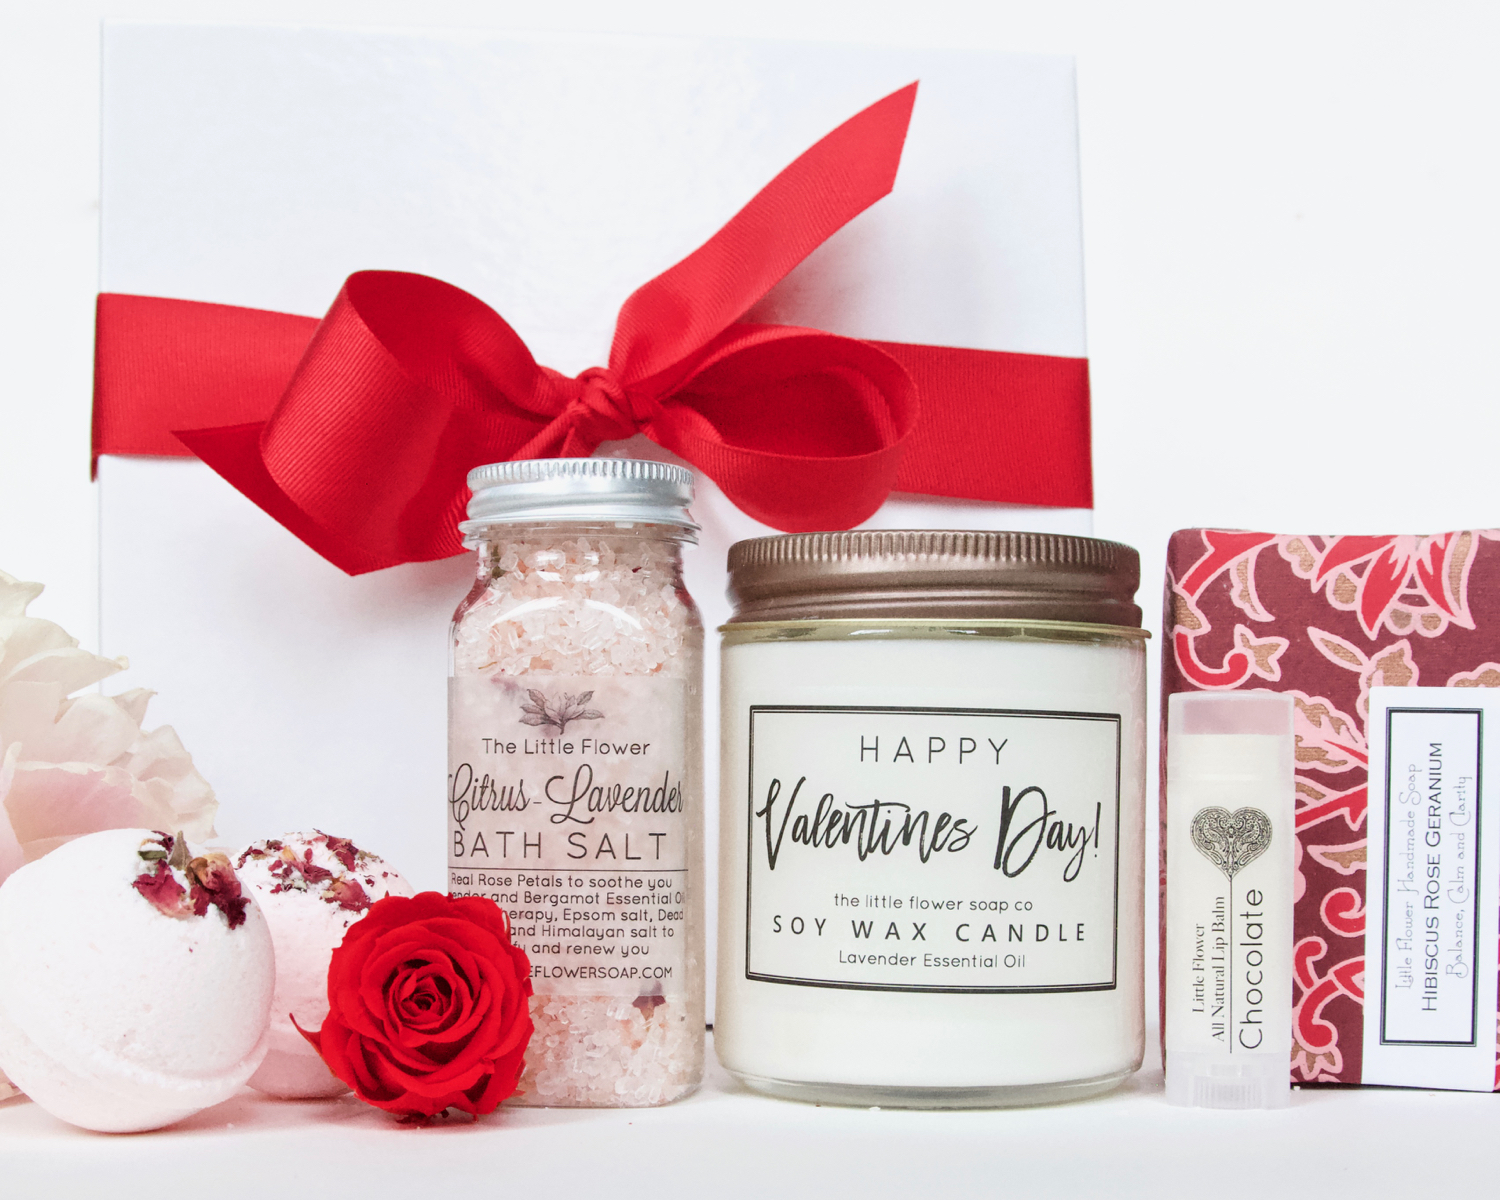 Valentines Day Spa Gift Box Handmade Aromatherapy Spa Gift Basket For Women